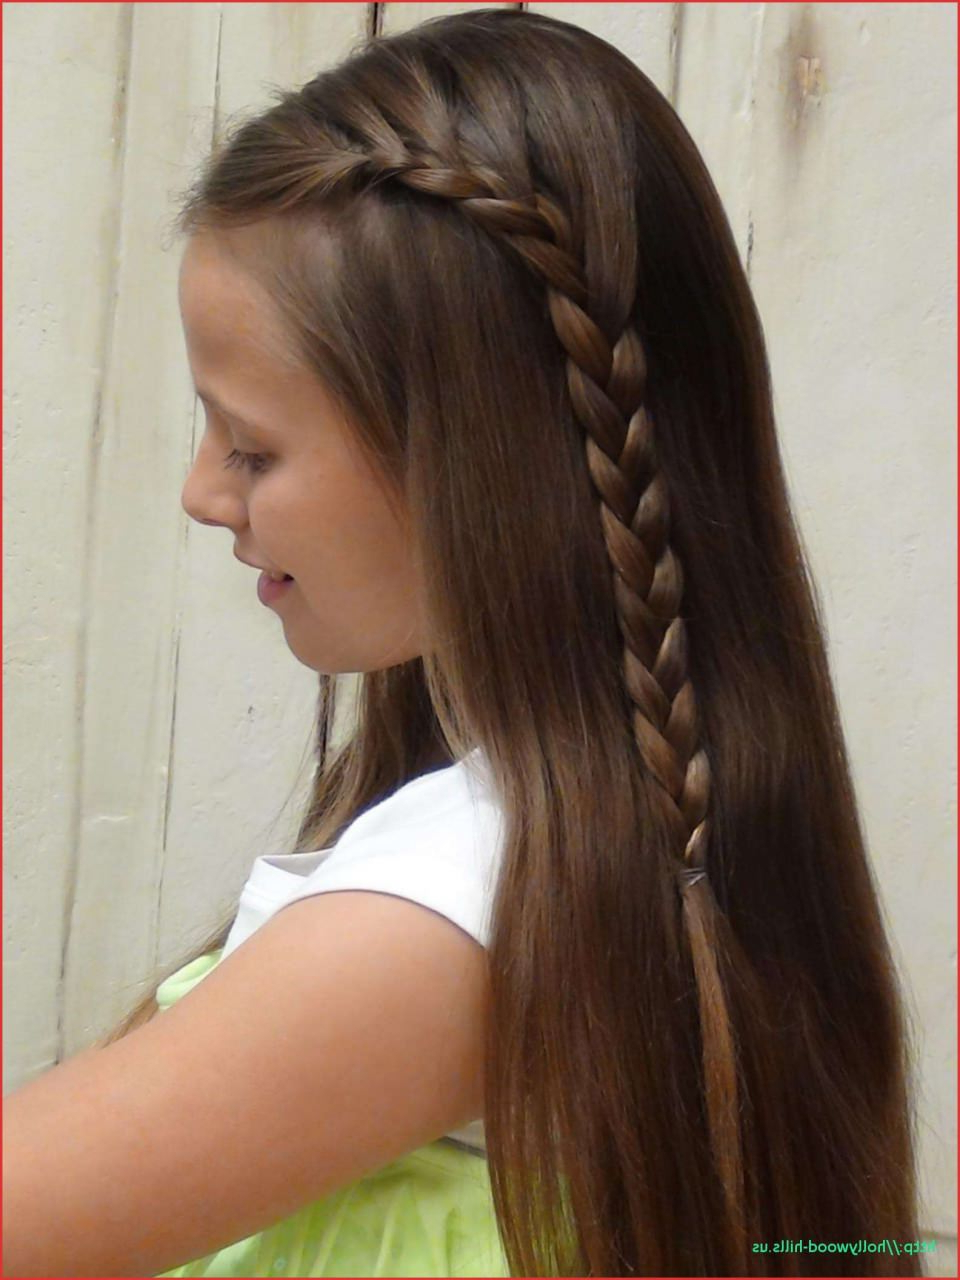 Most Recent Asymmetrical French Braided Hairstyles In Braid Hairstyles For Long Hair — Find Hair Cuts (View 12 of 20)